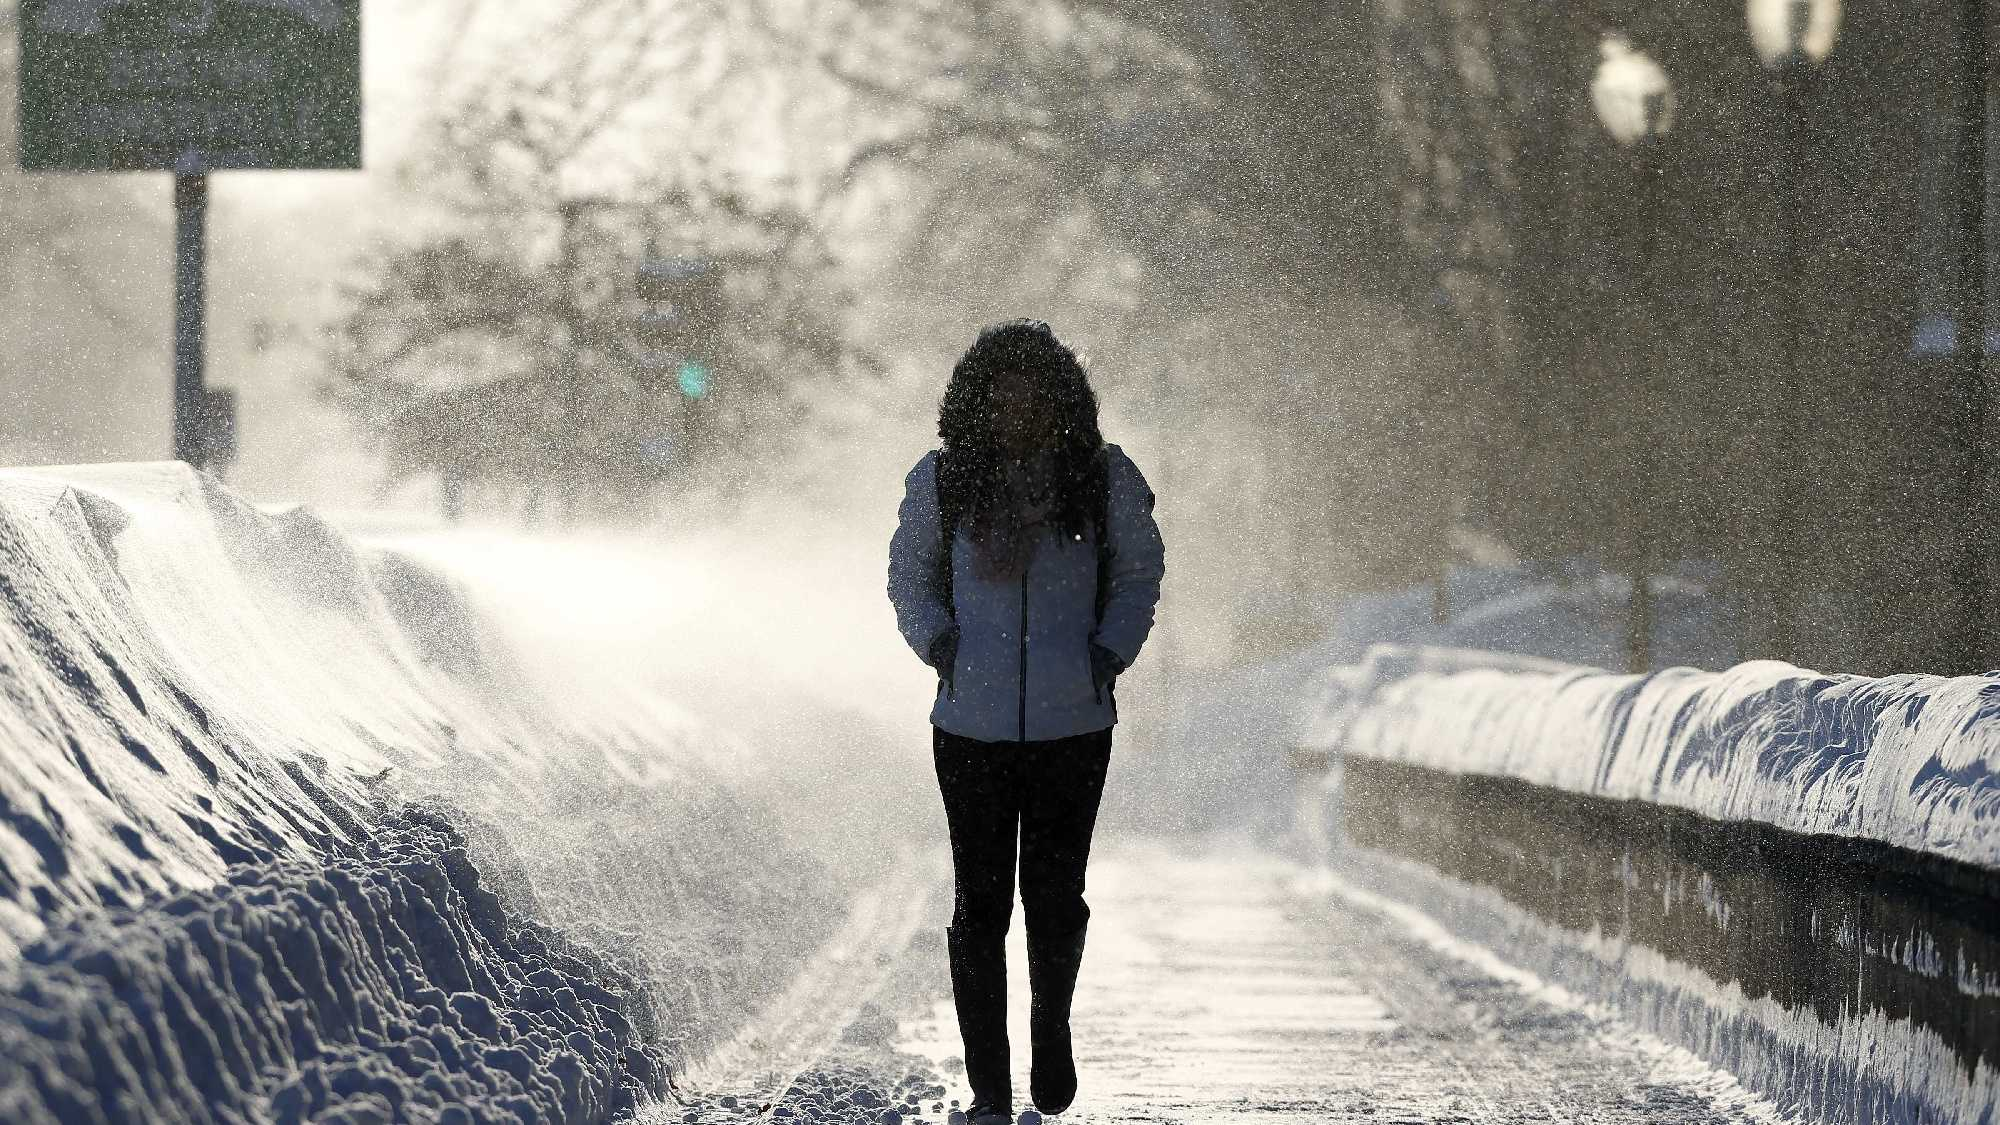 A woman walks through drifting snow in Cambridge, Mass., Sunday, Feb. 15, 2015. A storm brought a new round of wind-whipped snow to New England on Sunday, threatening white-out conditions in coastal areas and forcing people to contend with a fourth winter onslaught in less than a month.